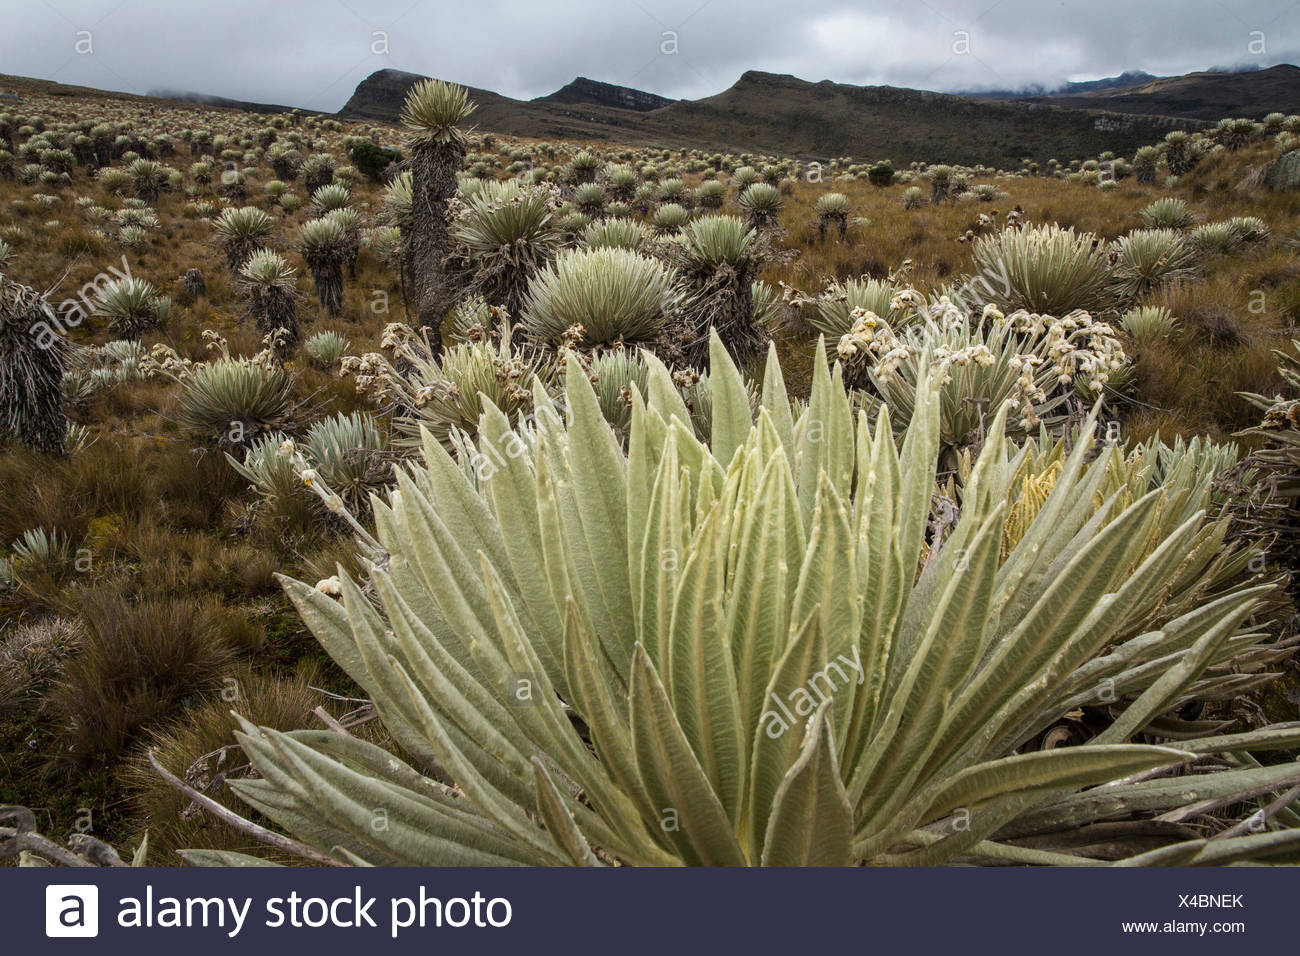 South America, Latin America, Colombia, nature, Sumapaz, national park, plants, vegetation, - Stock Image